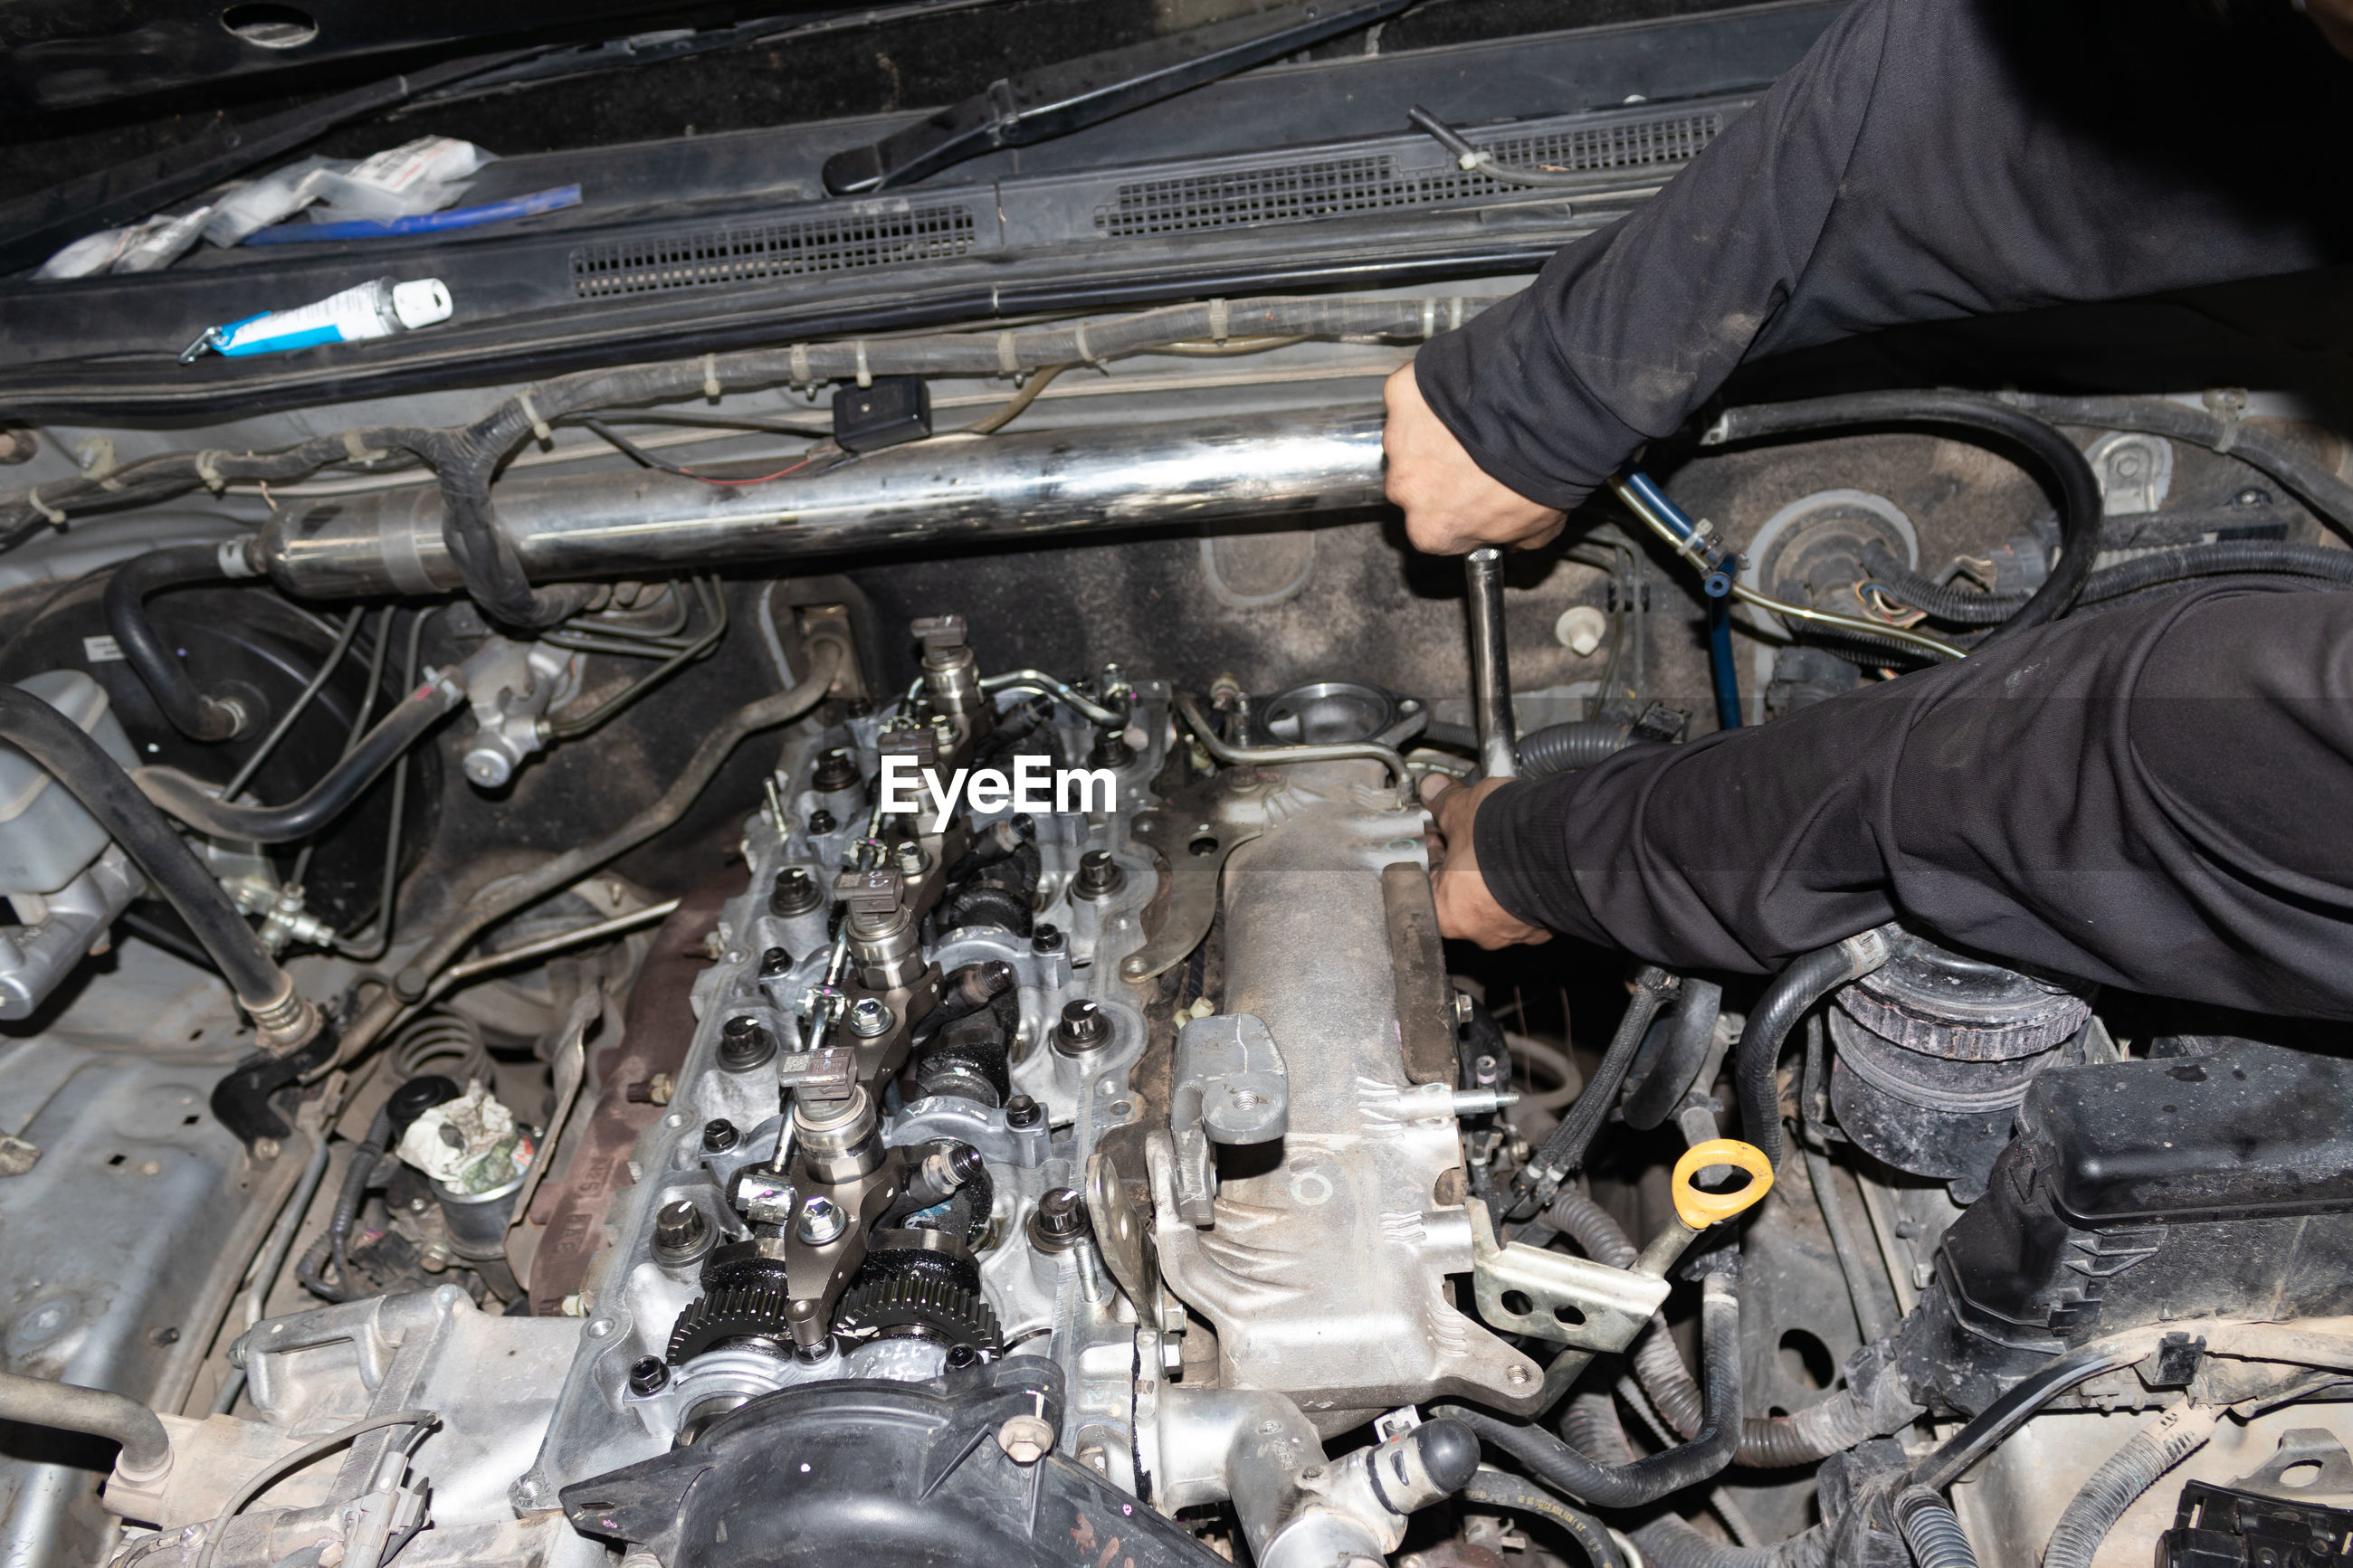 The mechanic is checking the engine.